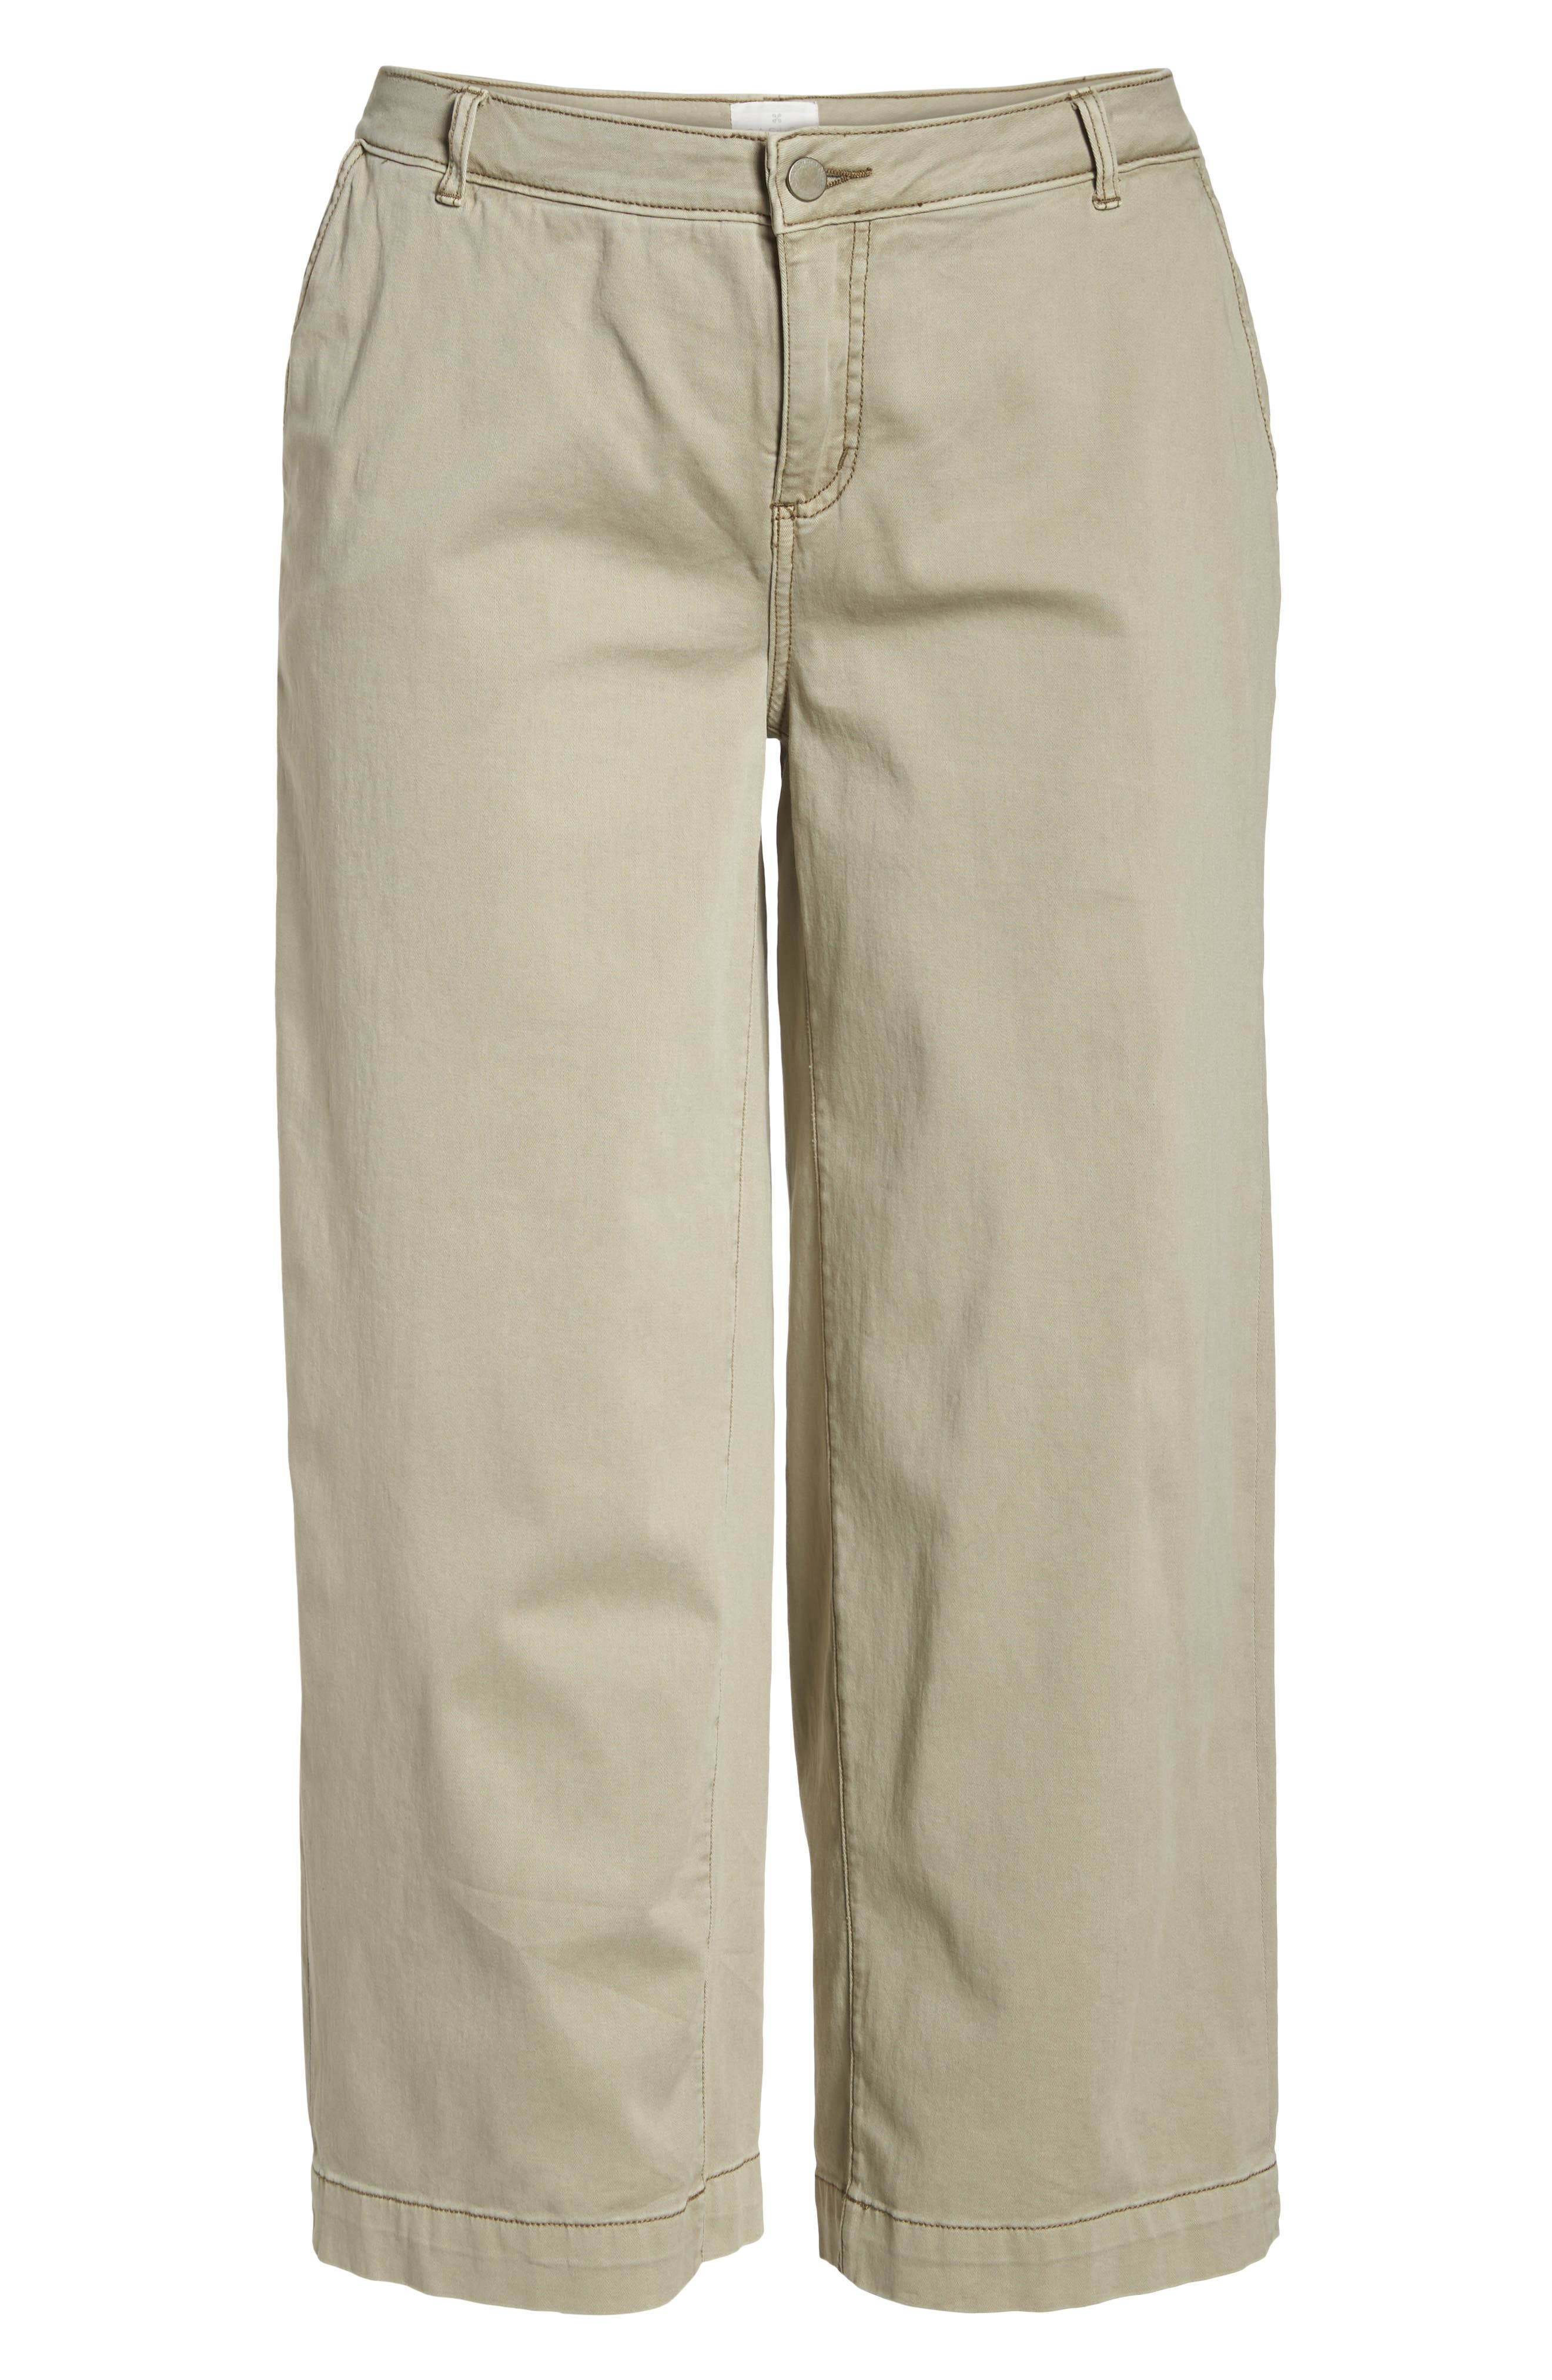 Wide Leg Stretch Cotton Twill Crop Pants,                             Alternate thumbnail 7, color,                             235